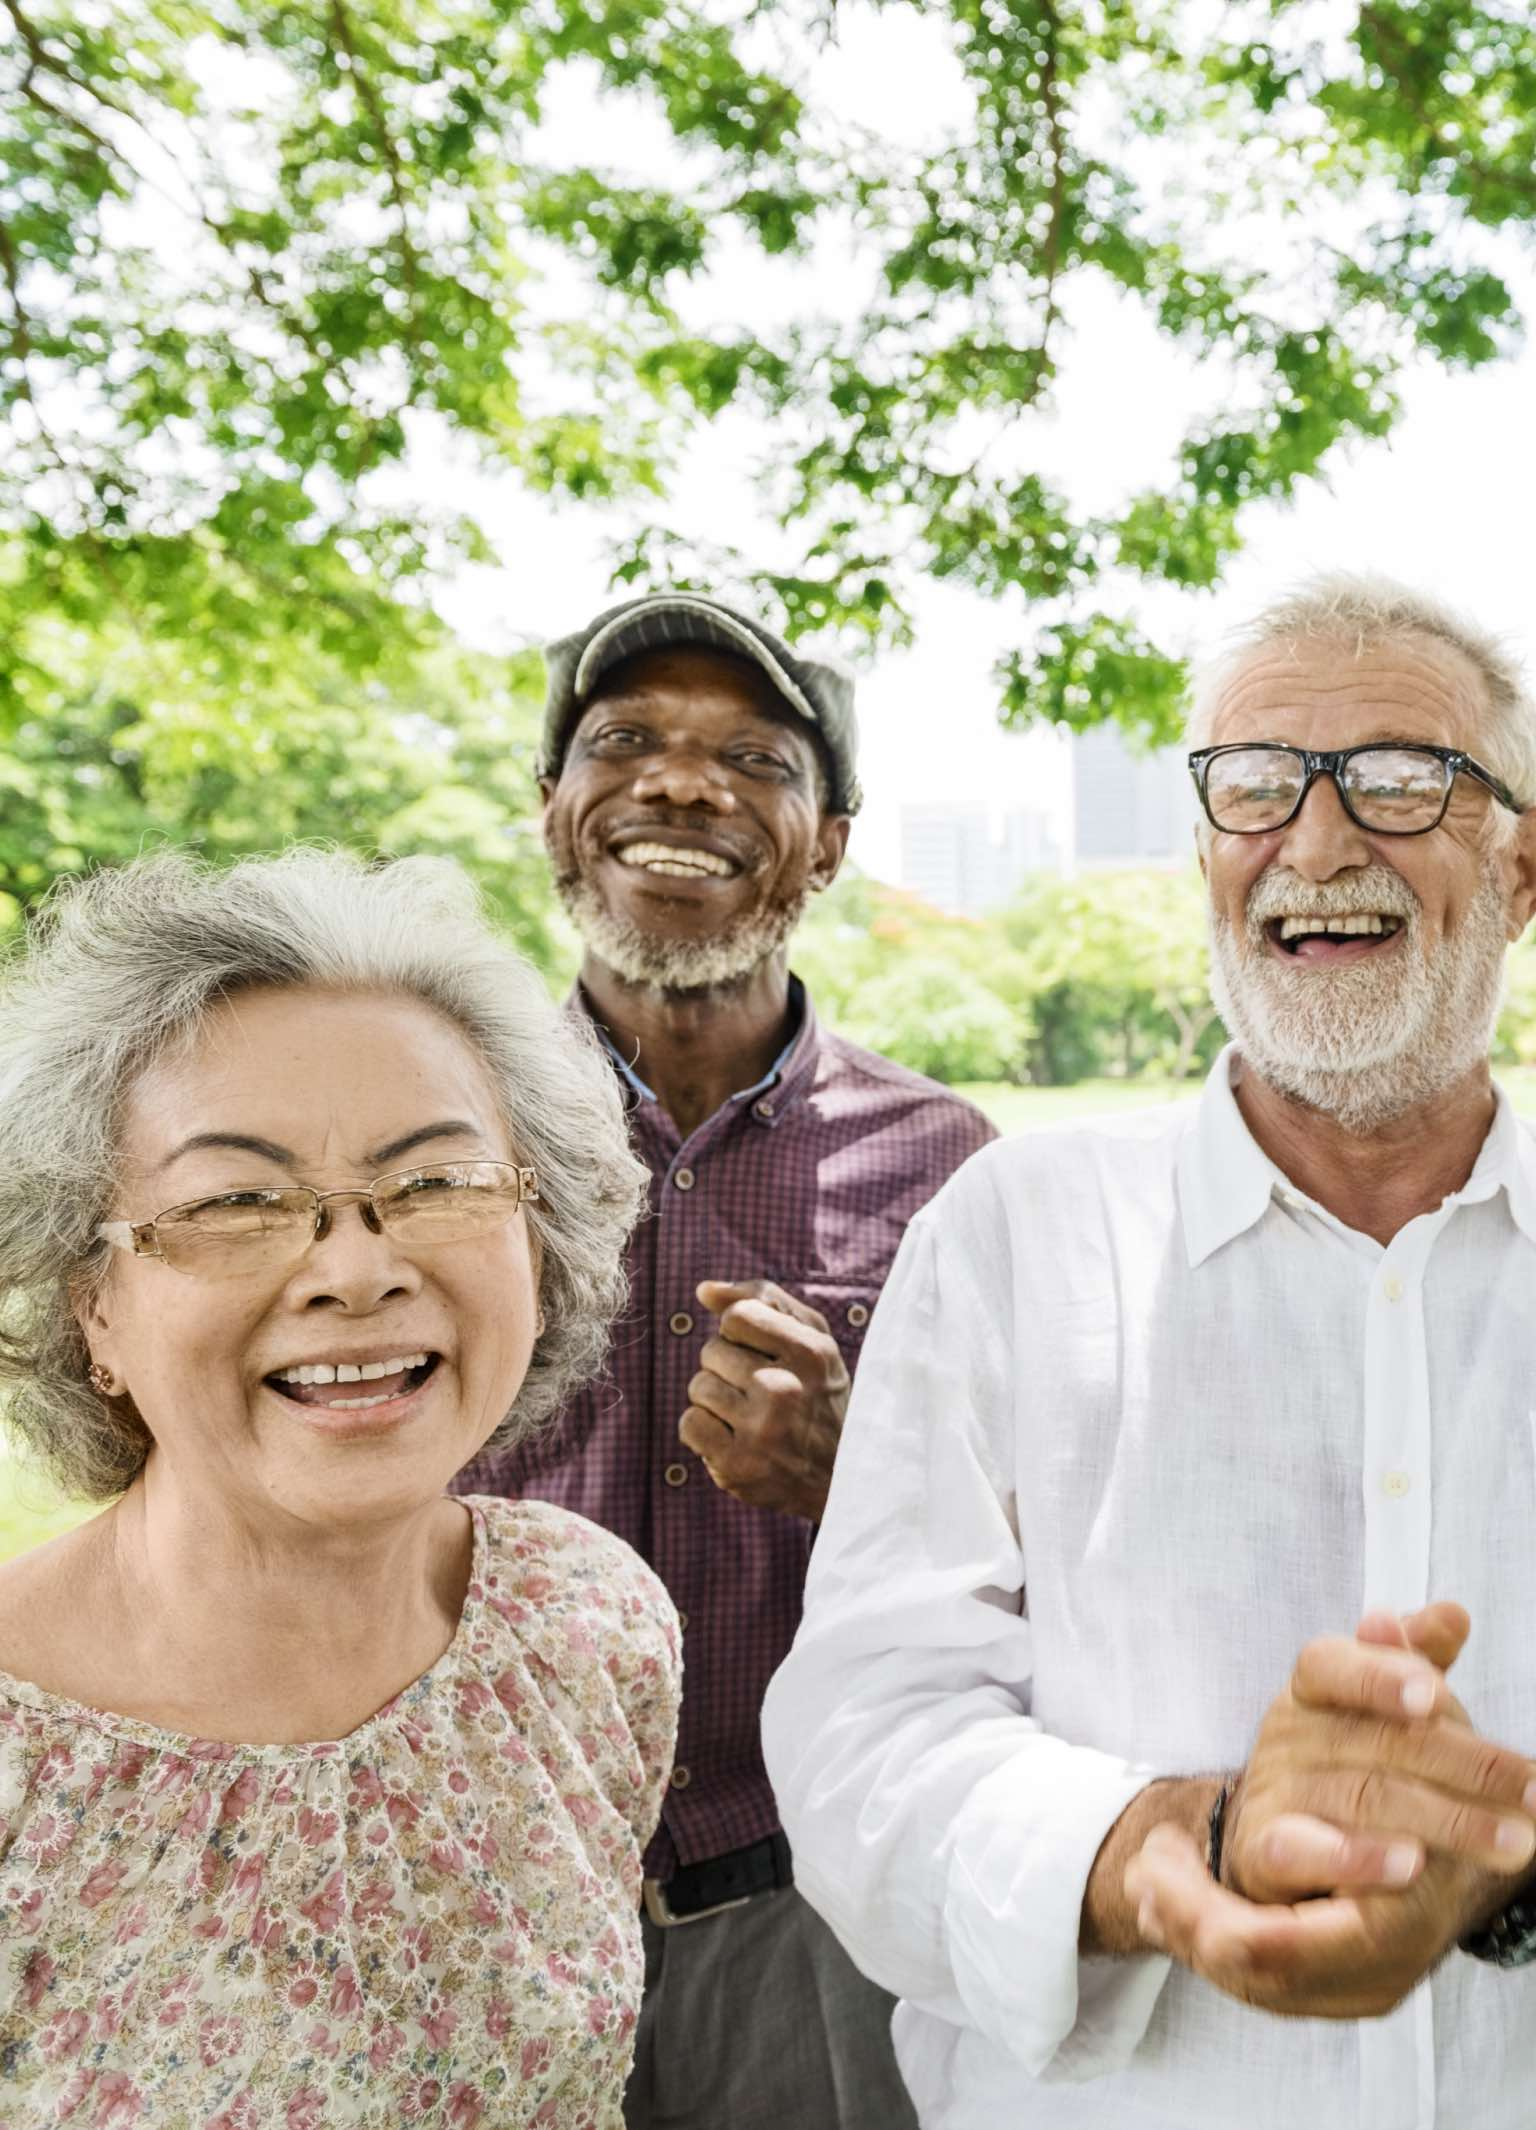 Group of multi-racial older adult friends